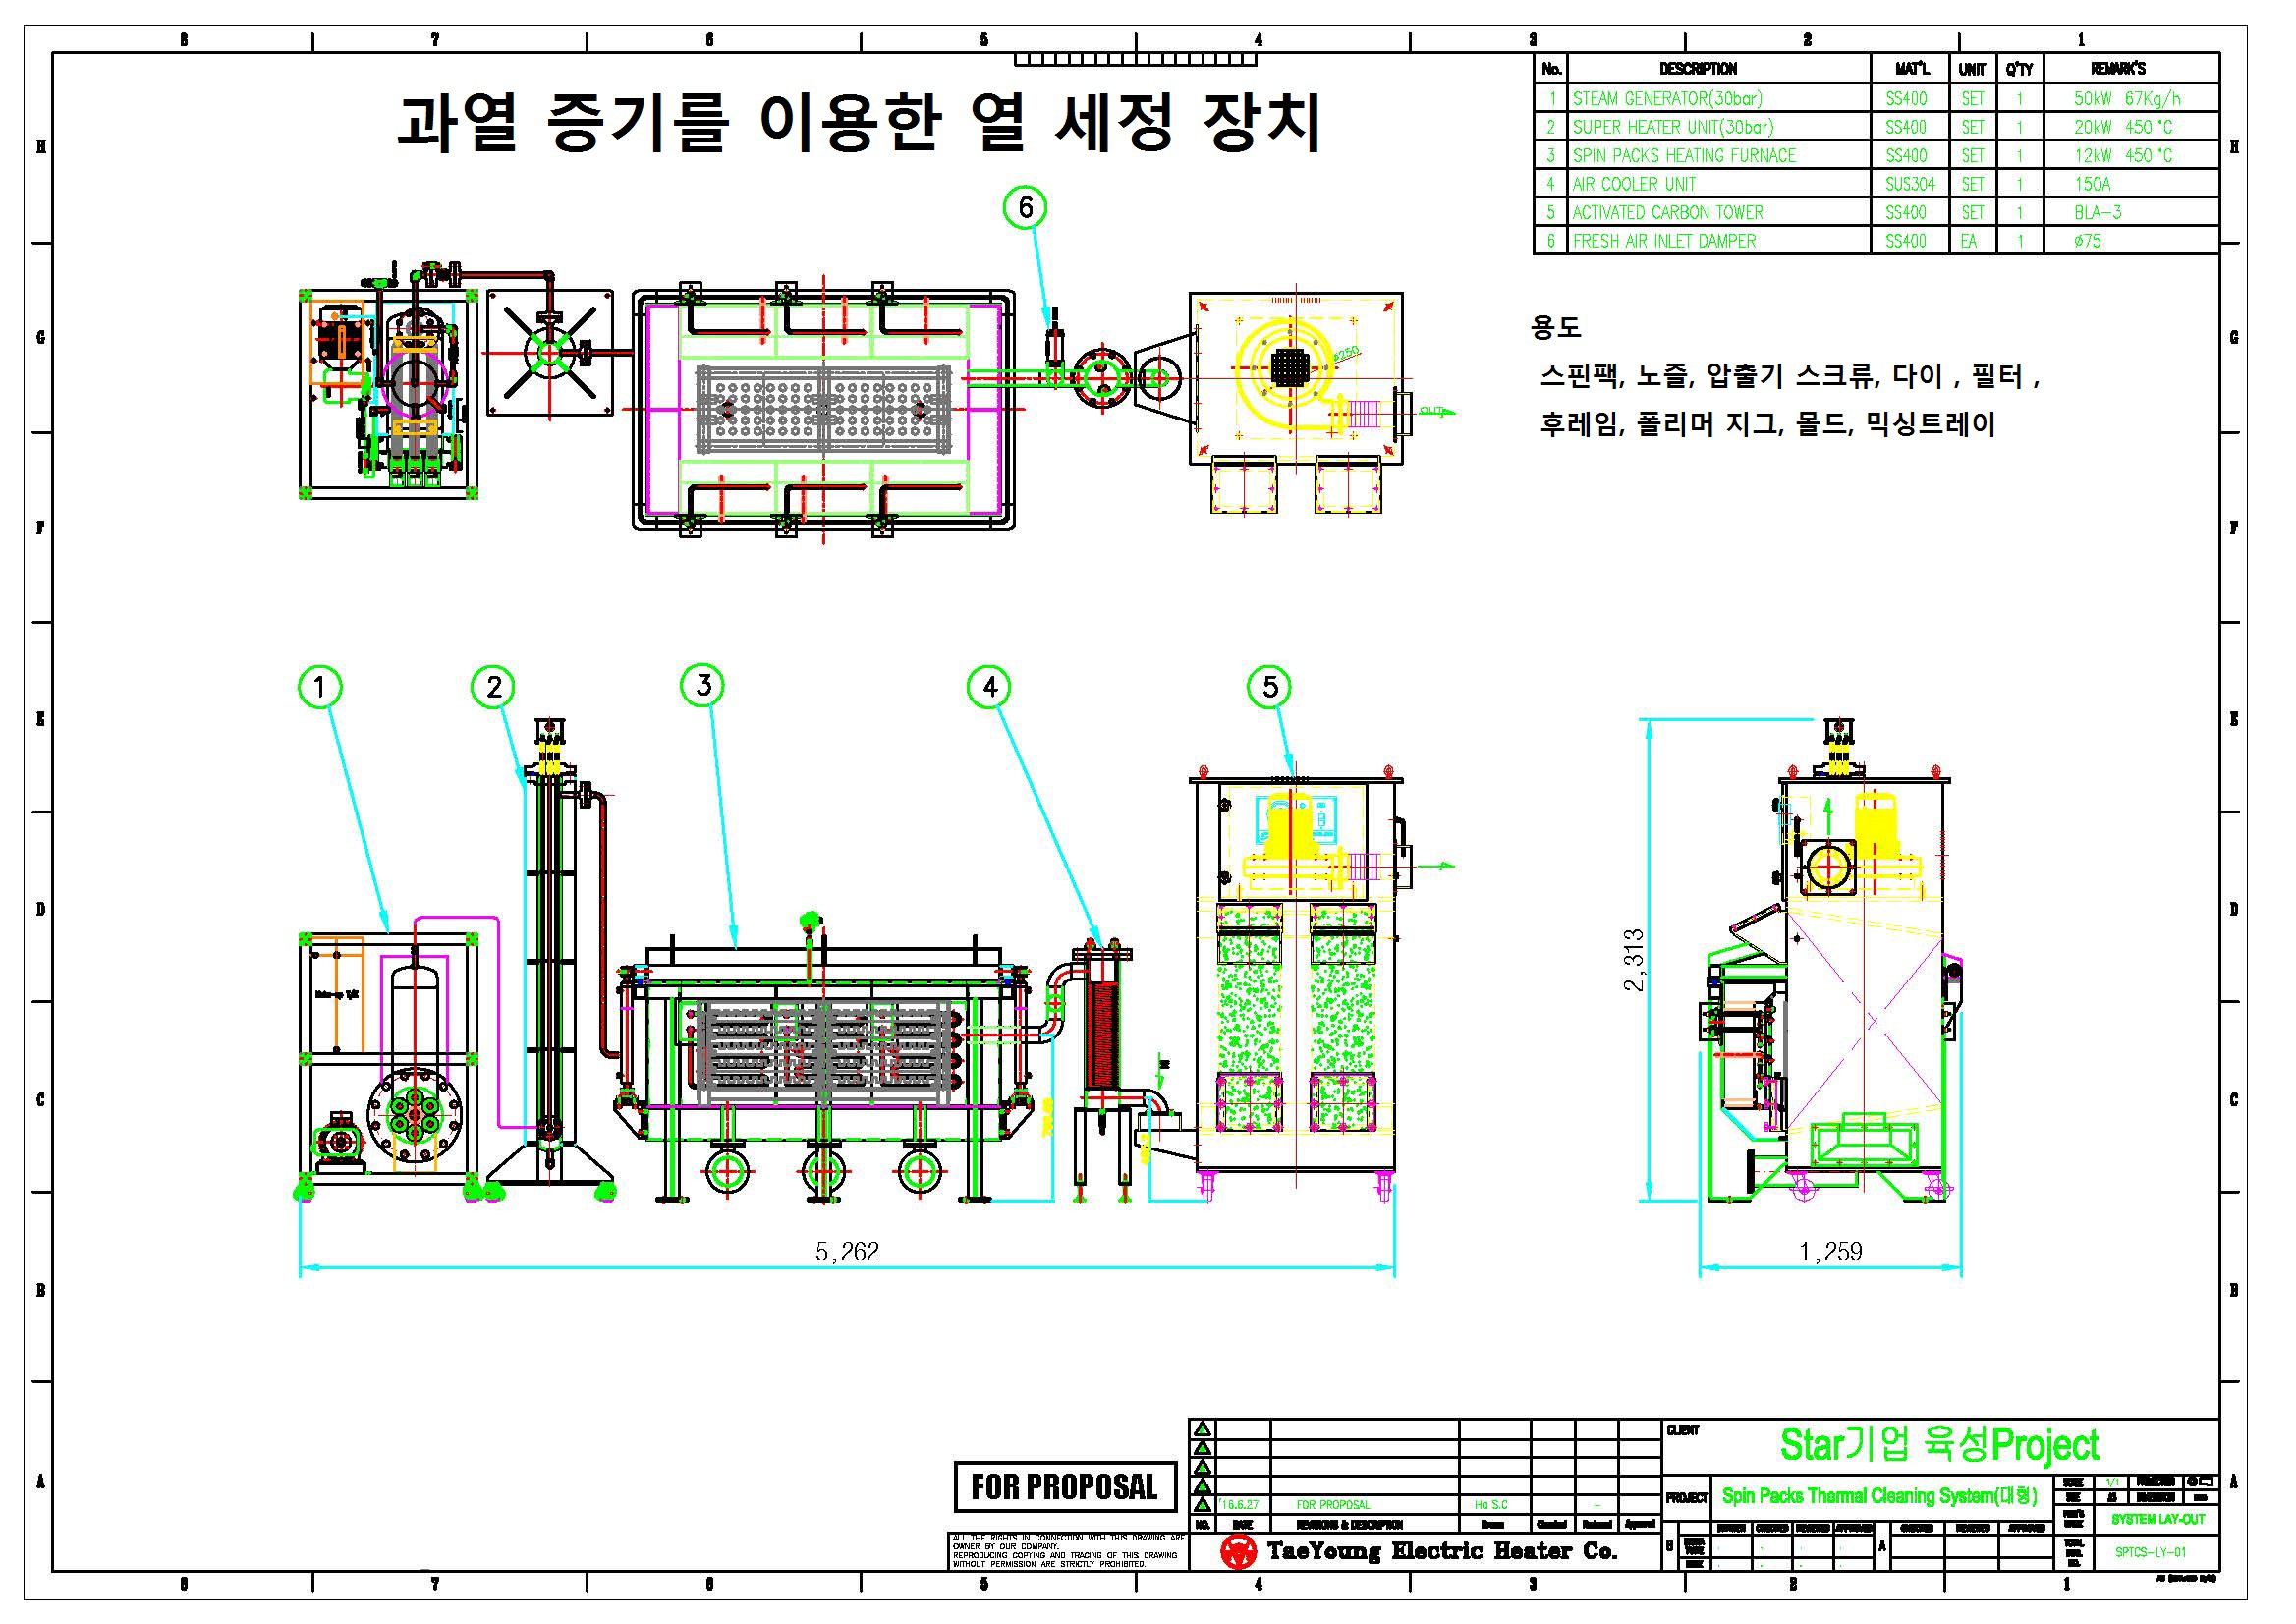 SPIN PACK CLEANING SYS LAY OUT(메인이미지).png